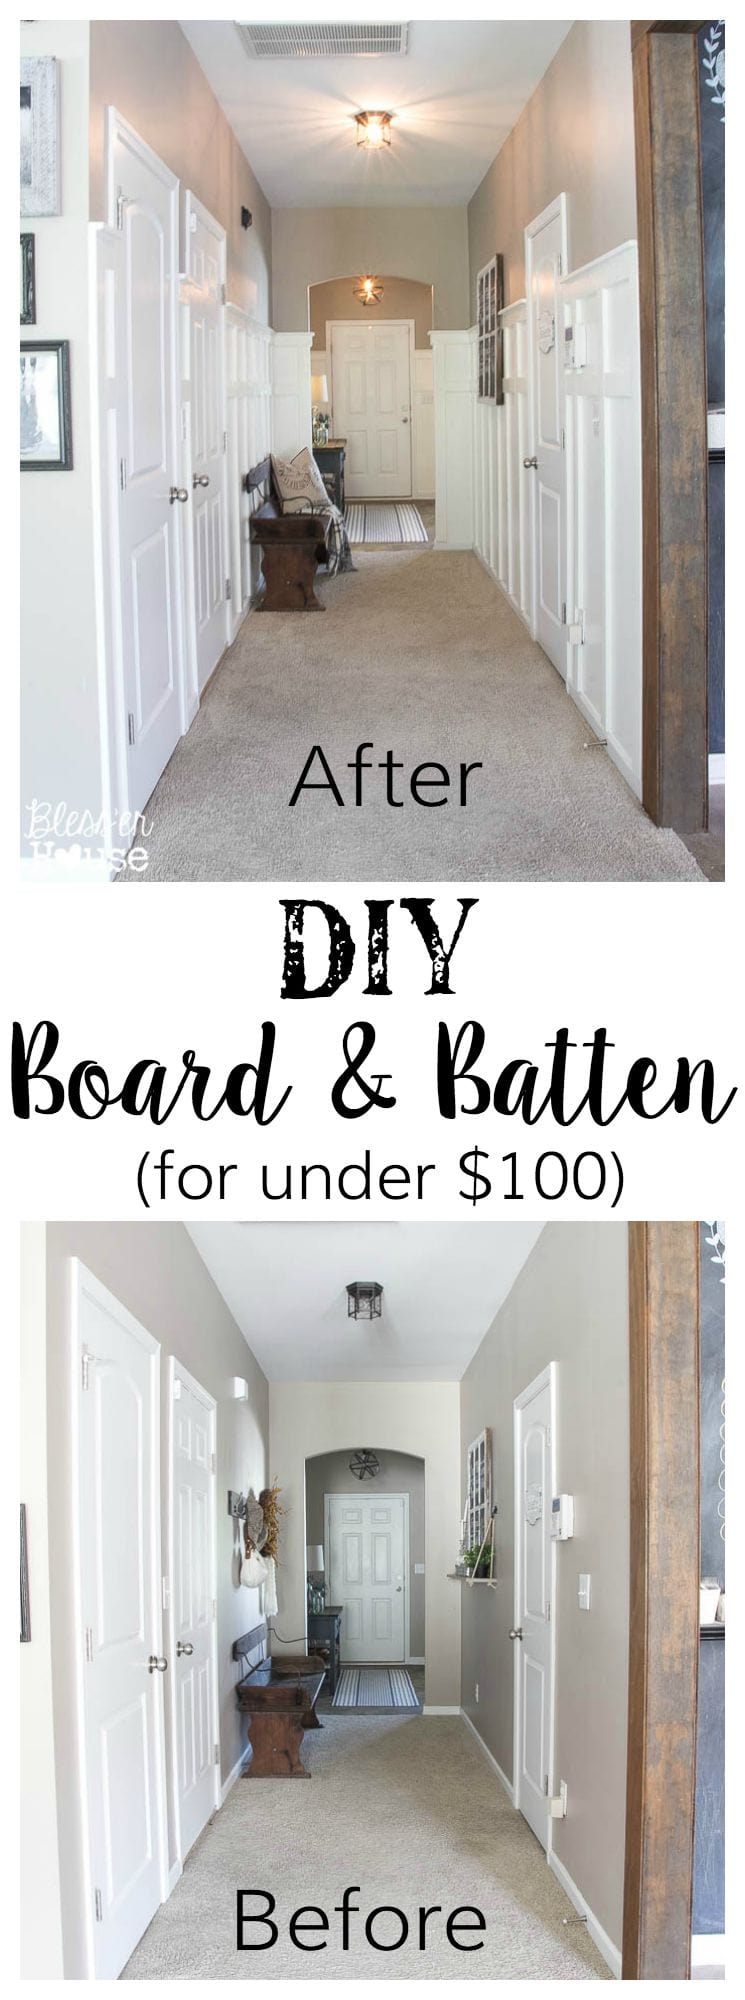 Filed under board and batten wainscoting diy diy projects - Diy Board And Batten For Under 100 Glidden Review Giveaway Bless Er